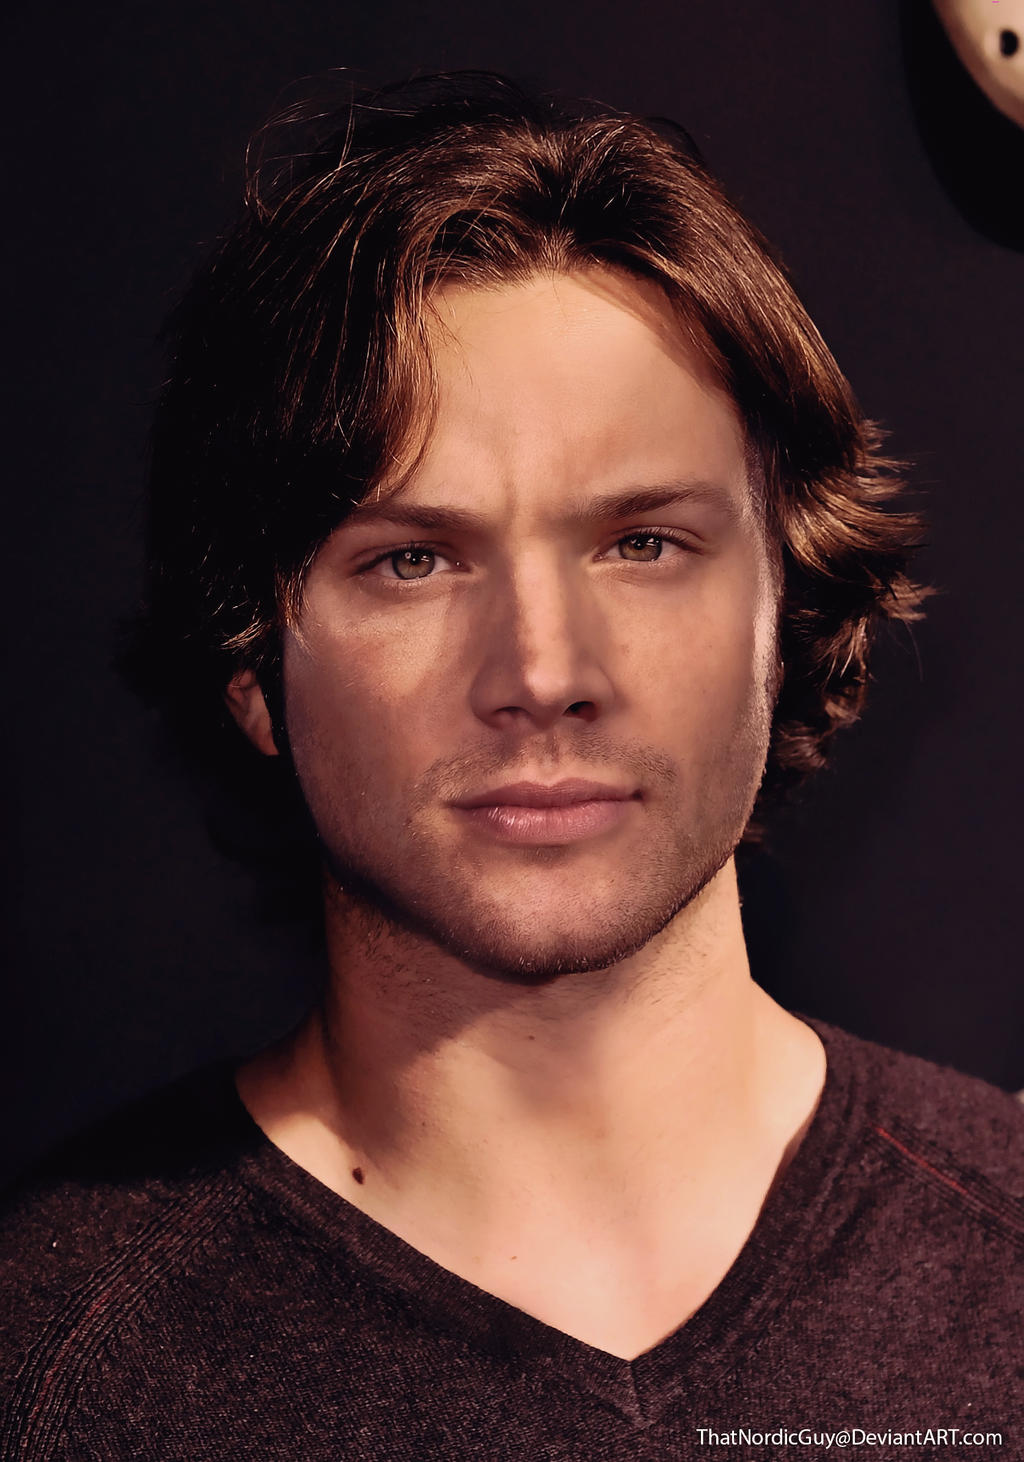 Jared Padalecki / Jensen Ackles by ThatNordicGuy on DeviantArt